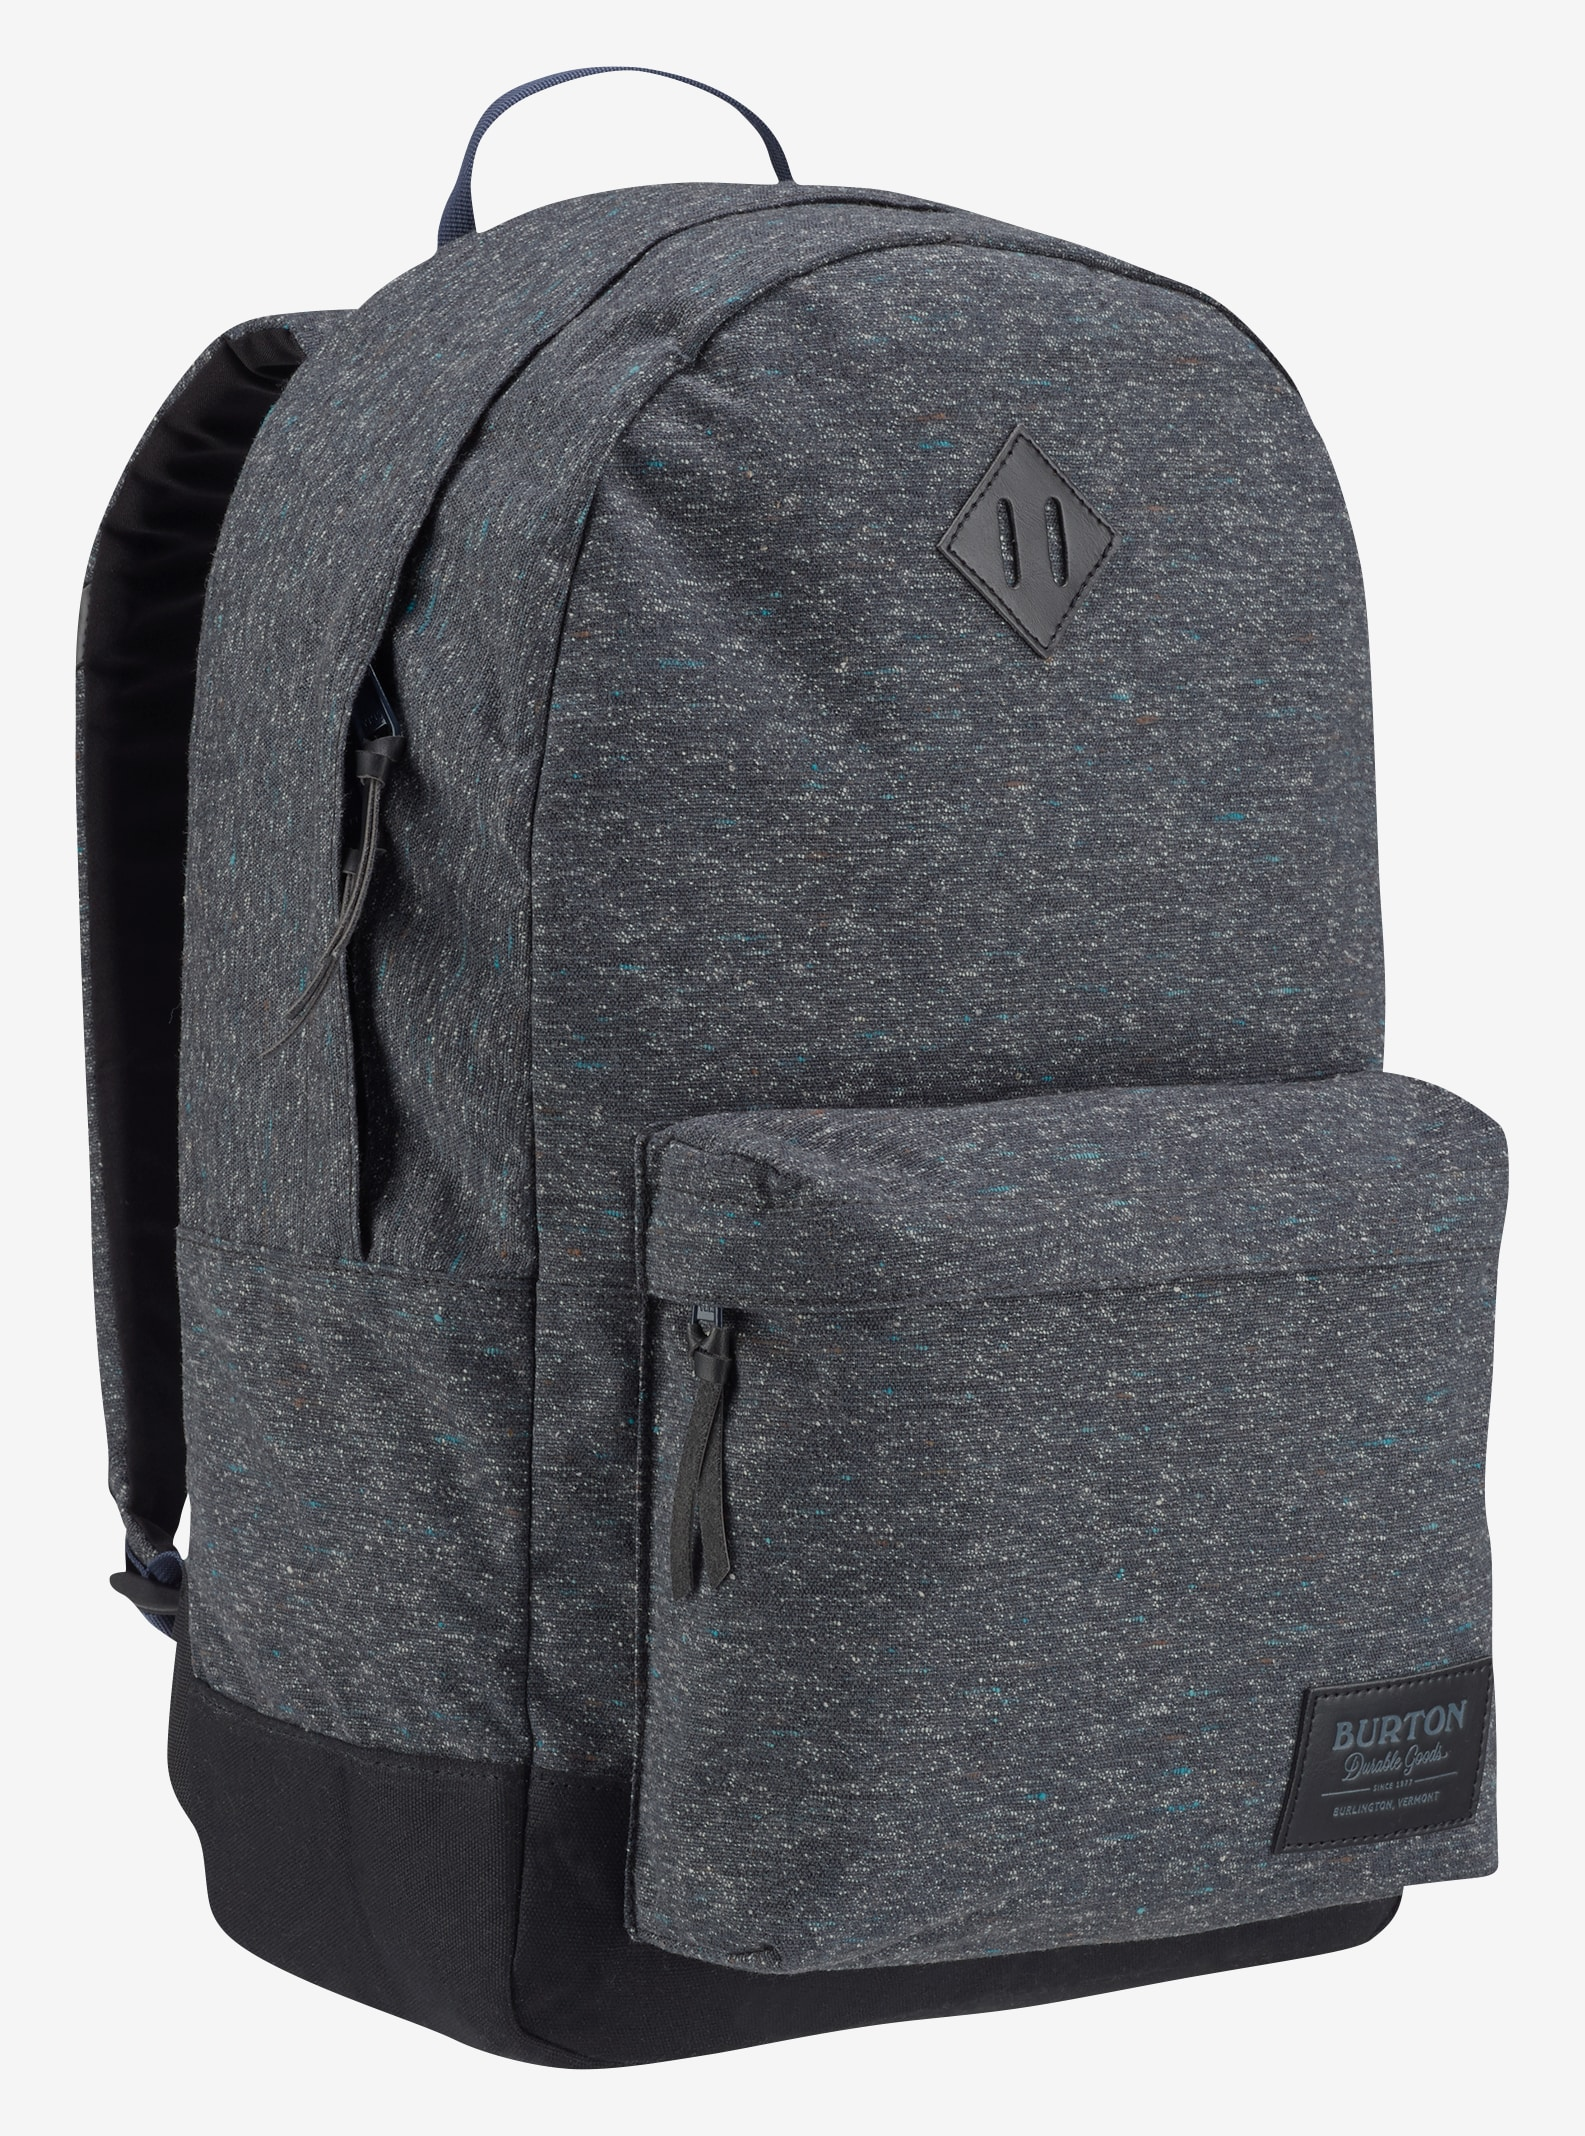 Burton Women's Kettle Backpack shown in Faded Multi Fleck